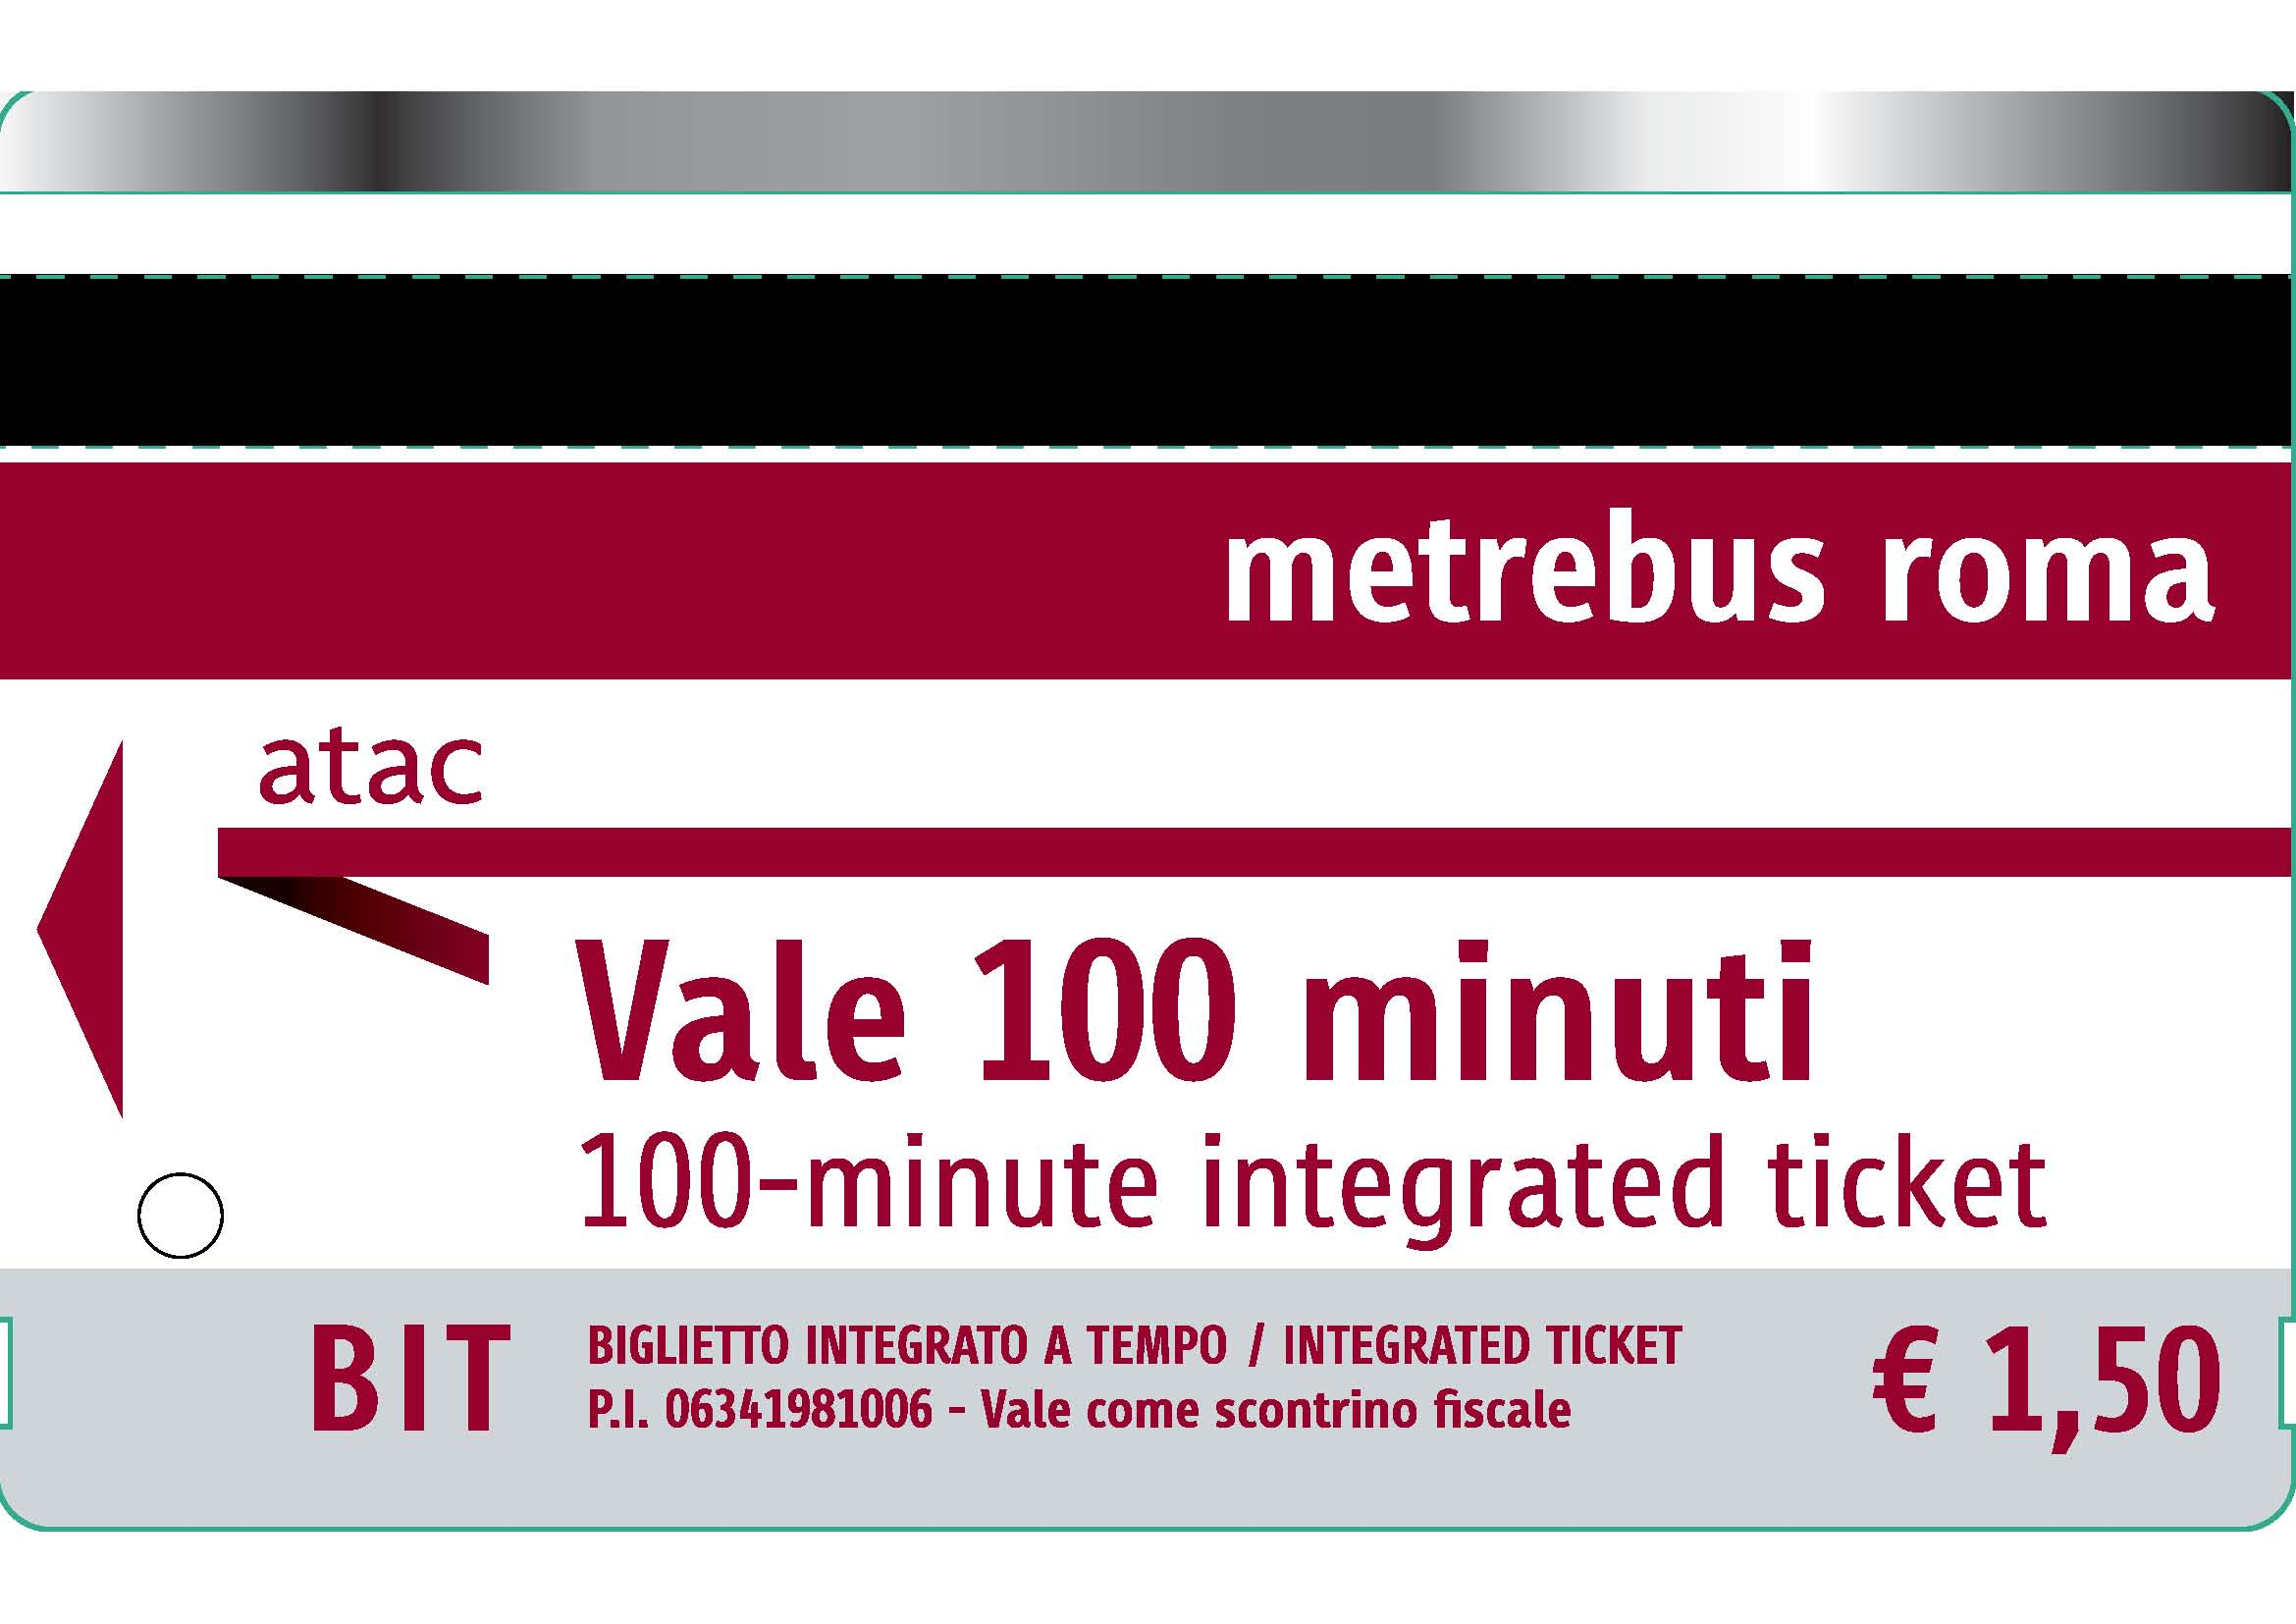 Rome Public Transport: Tips for Riding the Bus